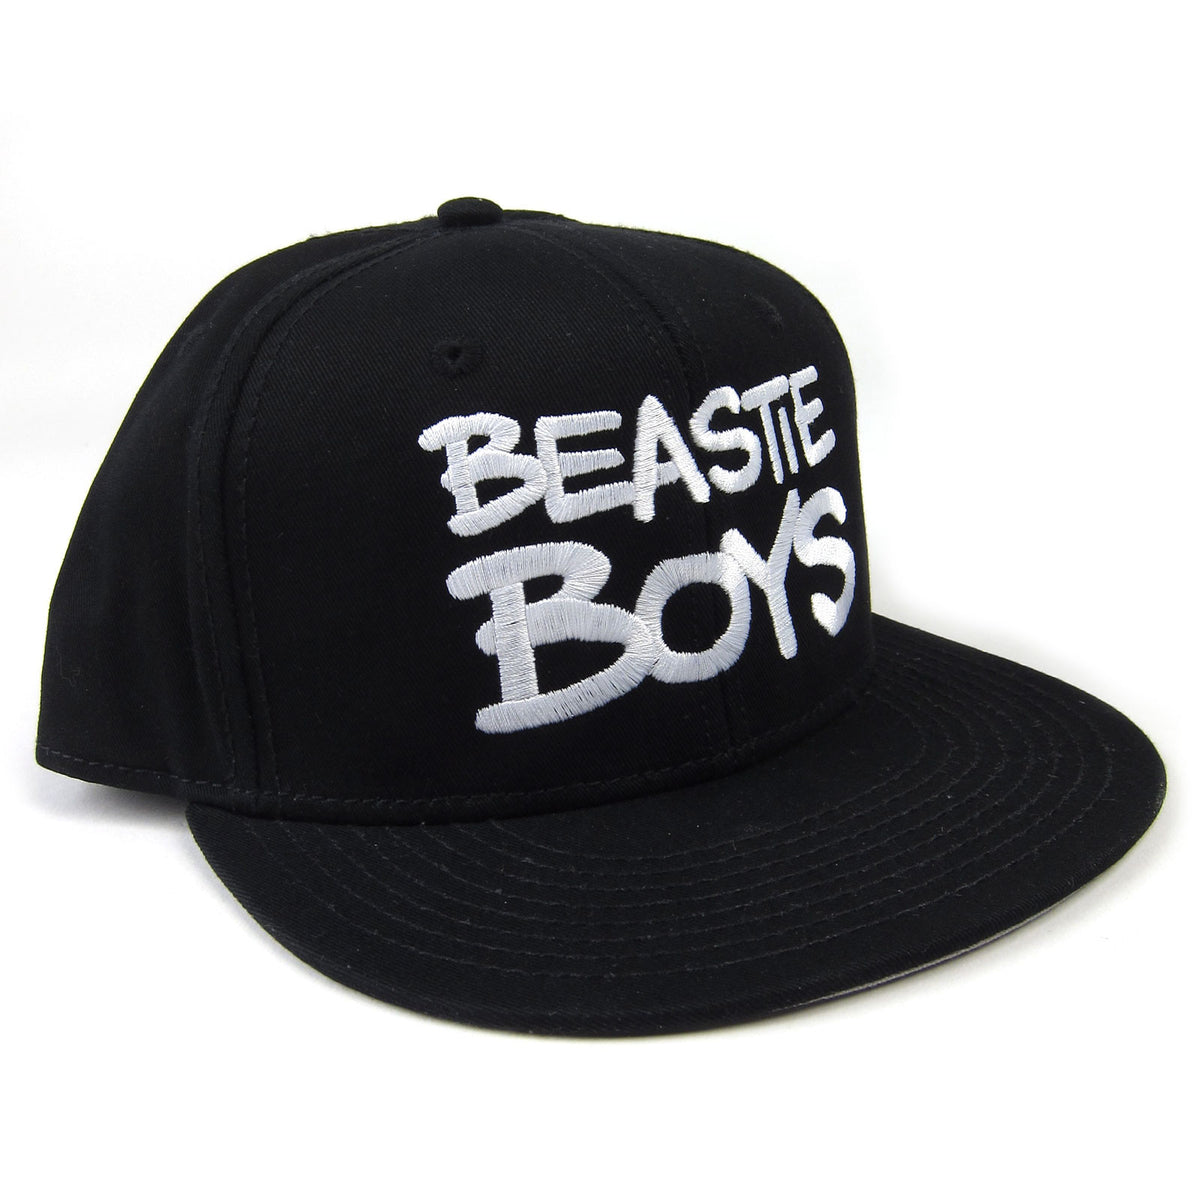 Beastie Boys: Check Your Head Hat - Black